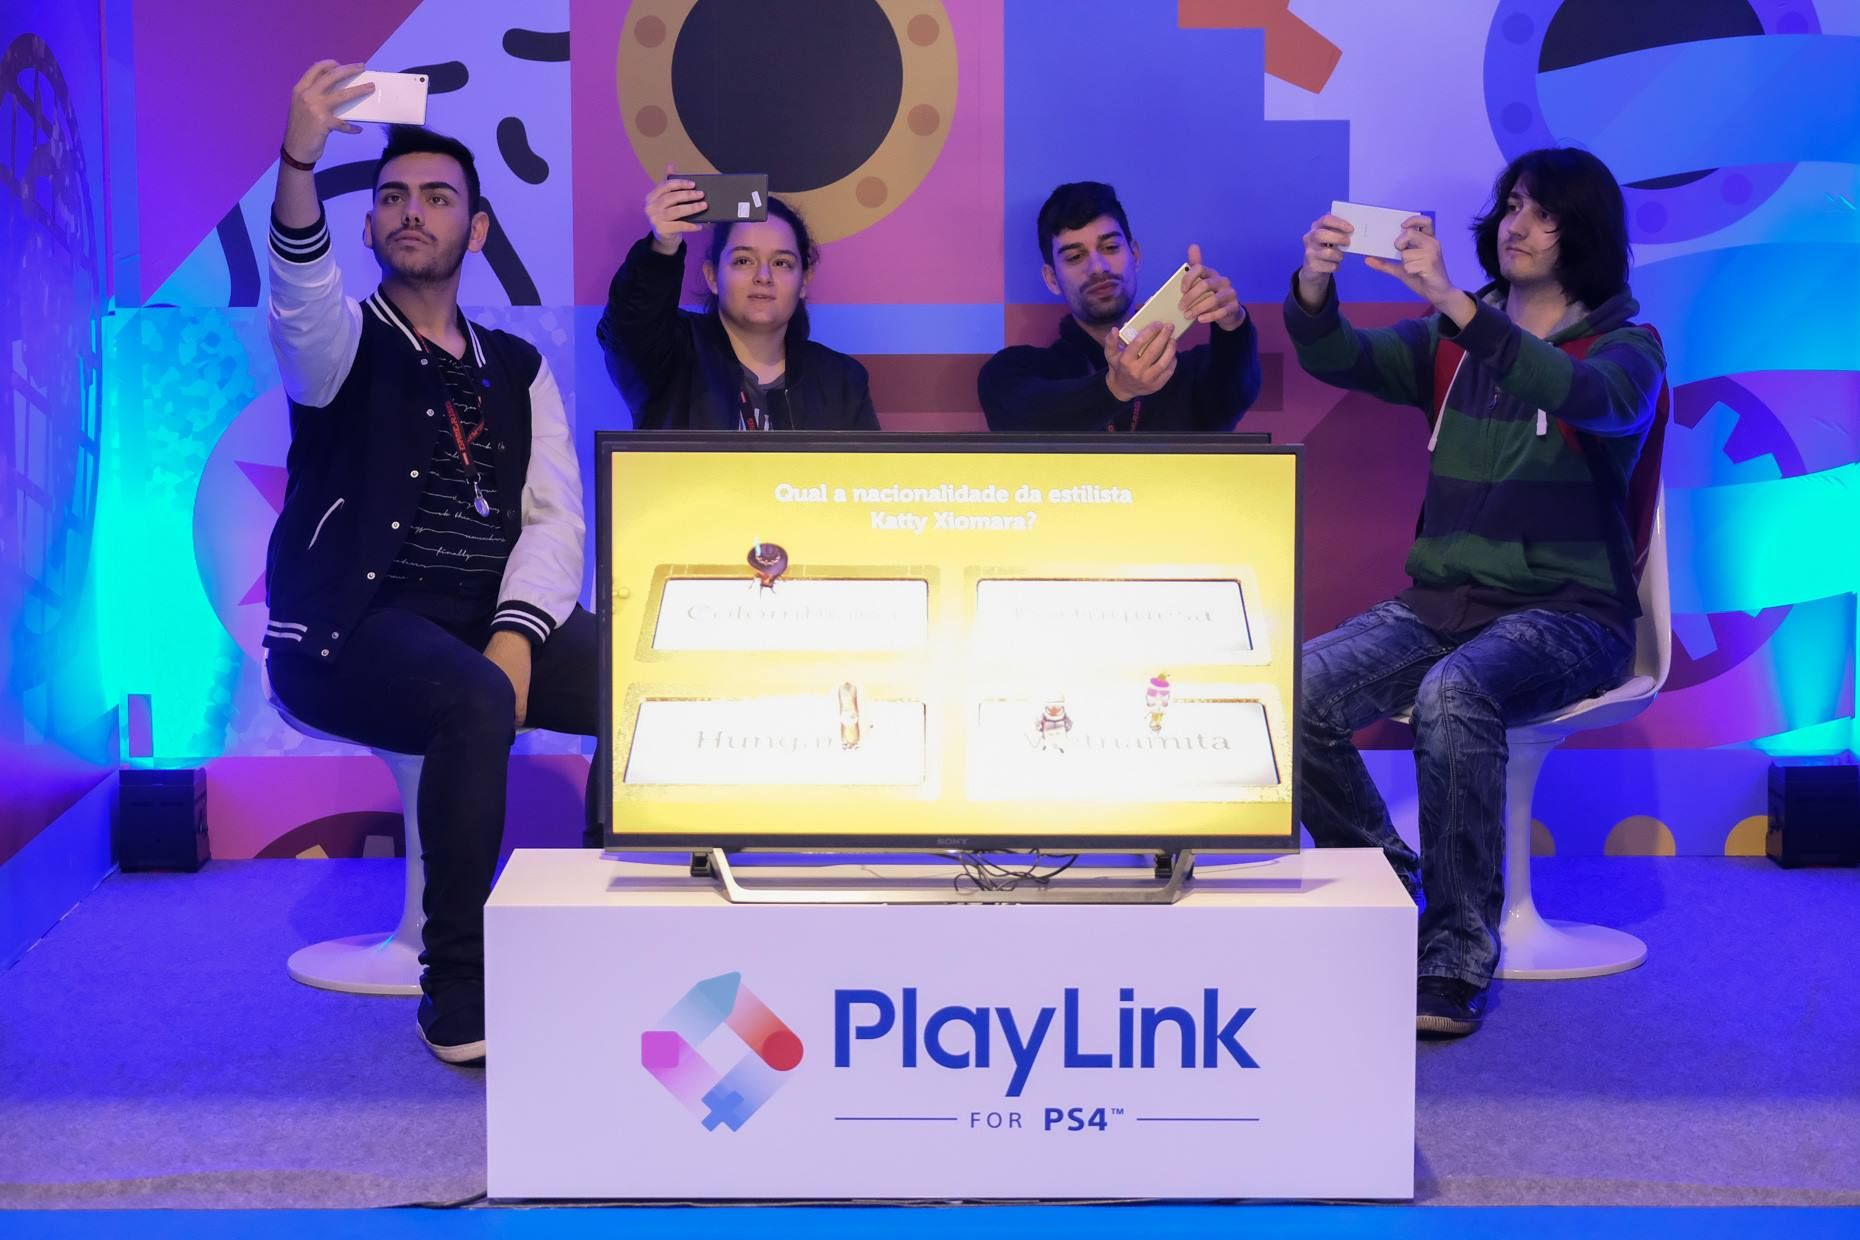 Playlink PS4